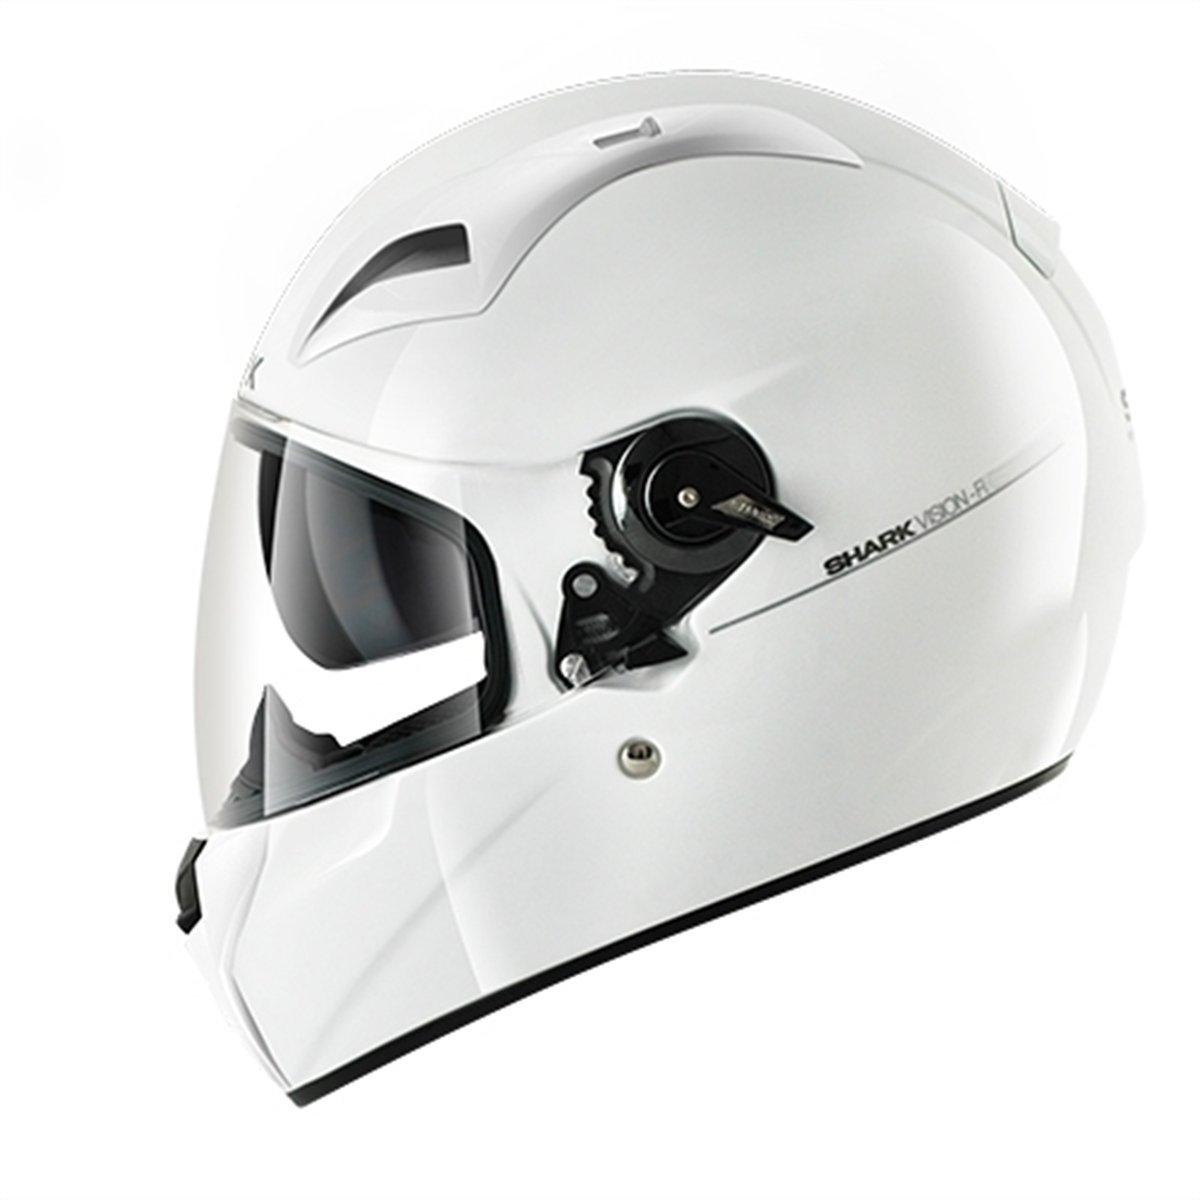 clearance sale shark vision r series 2 helmet blank gloss white online motorcycle. Black Bedroom Furniture Sets. Home Design Ideas